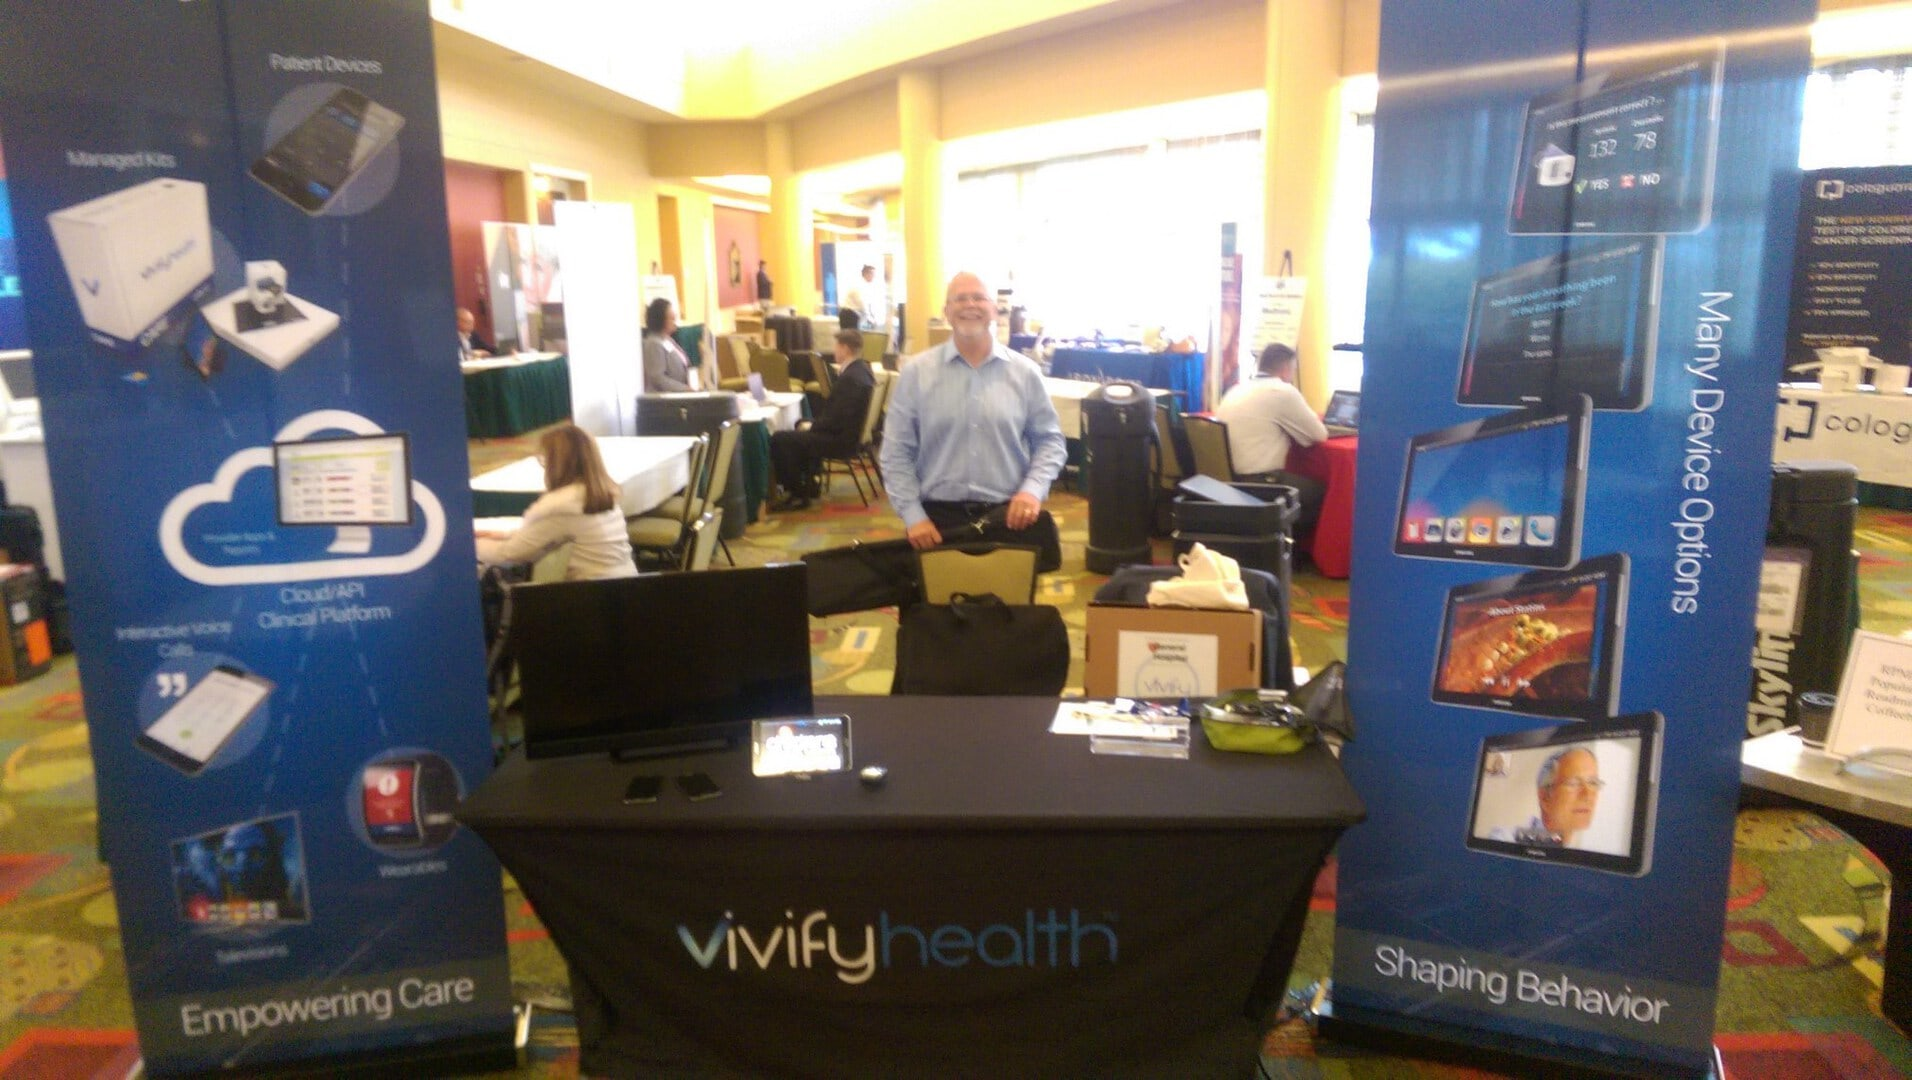 @VivifyHealth is representing at the @Wrldhealthcare Summit in Atlanta today through Friday. #telehealth #mhealth